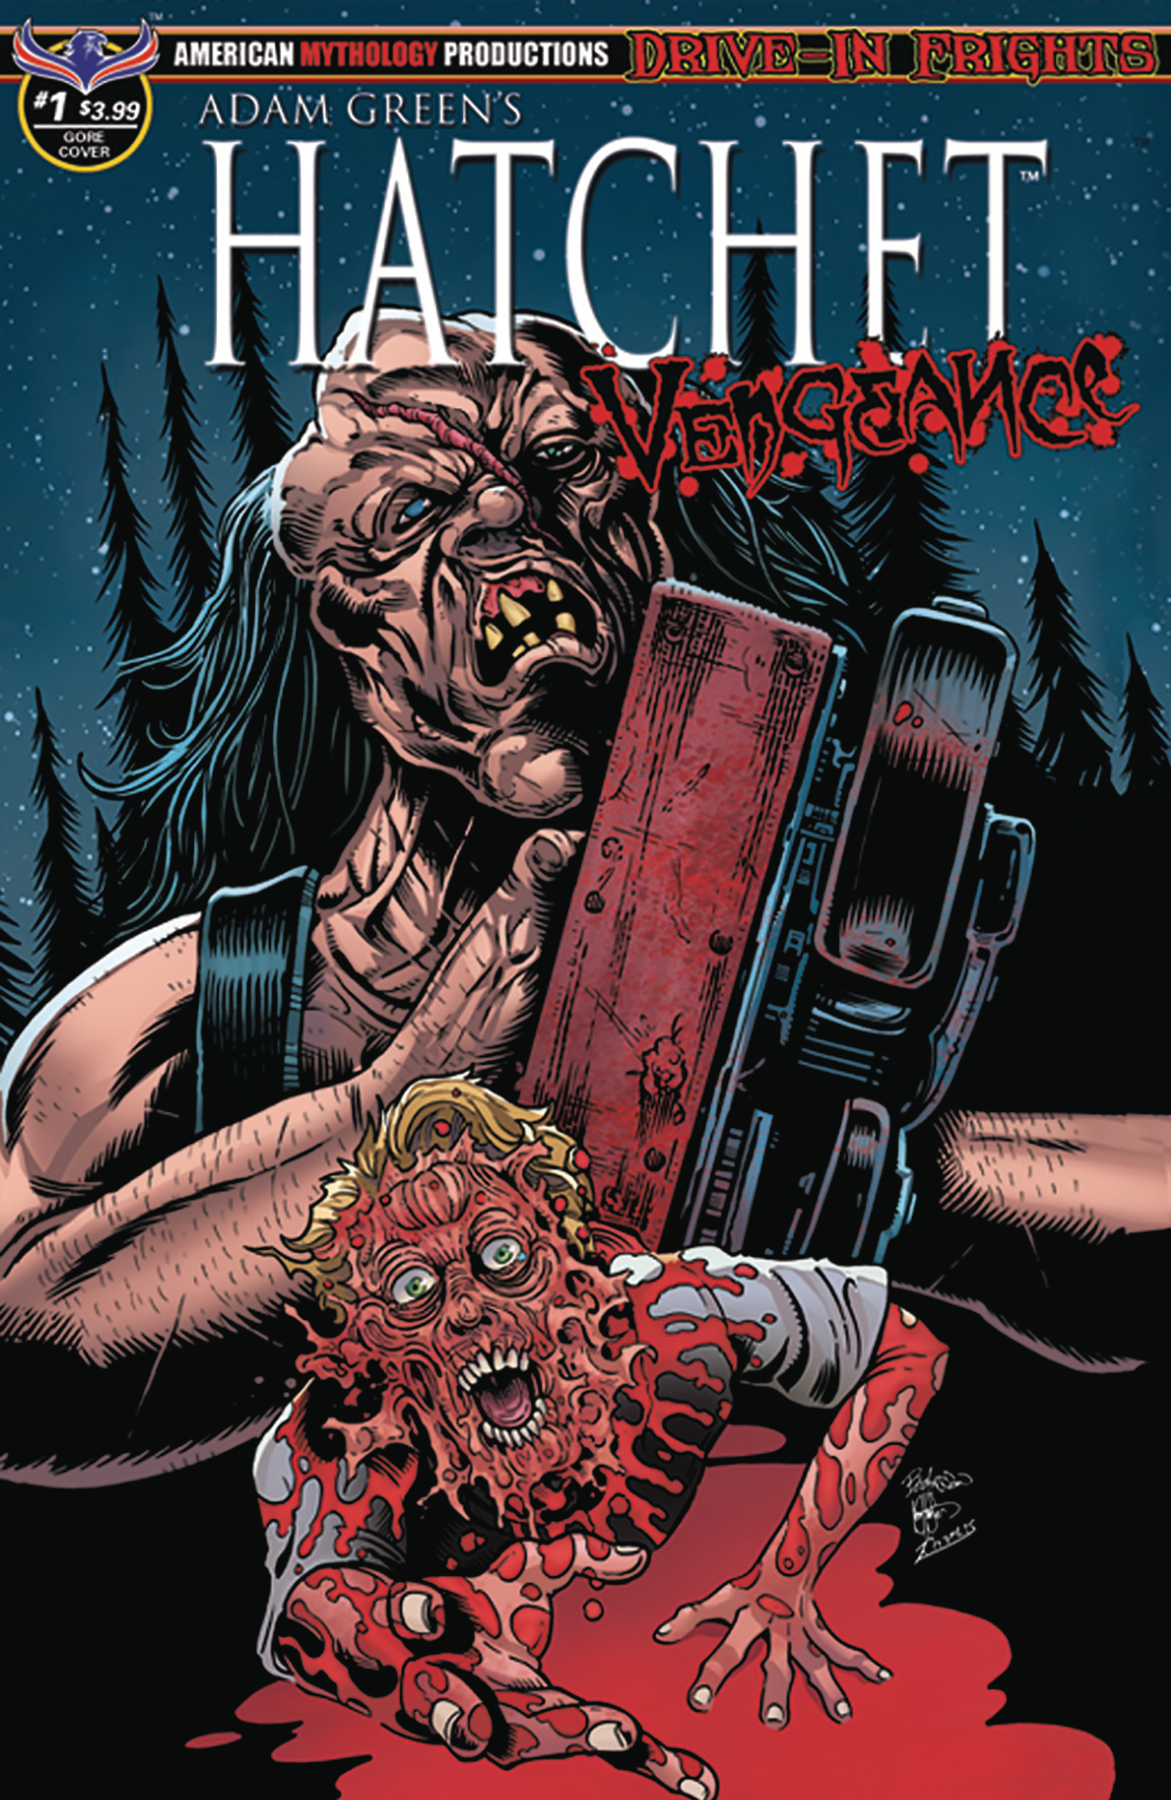 HATCHET VENGEANCE #1 HASSON BLOOD & GORE CVR